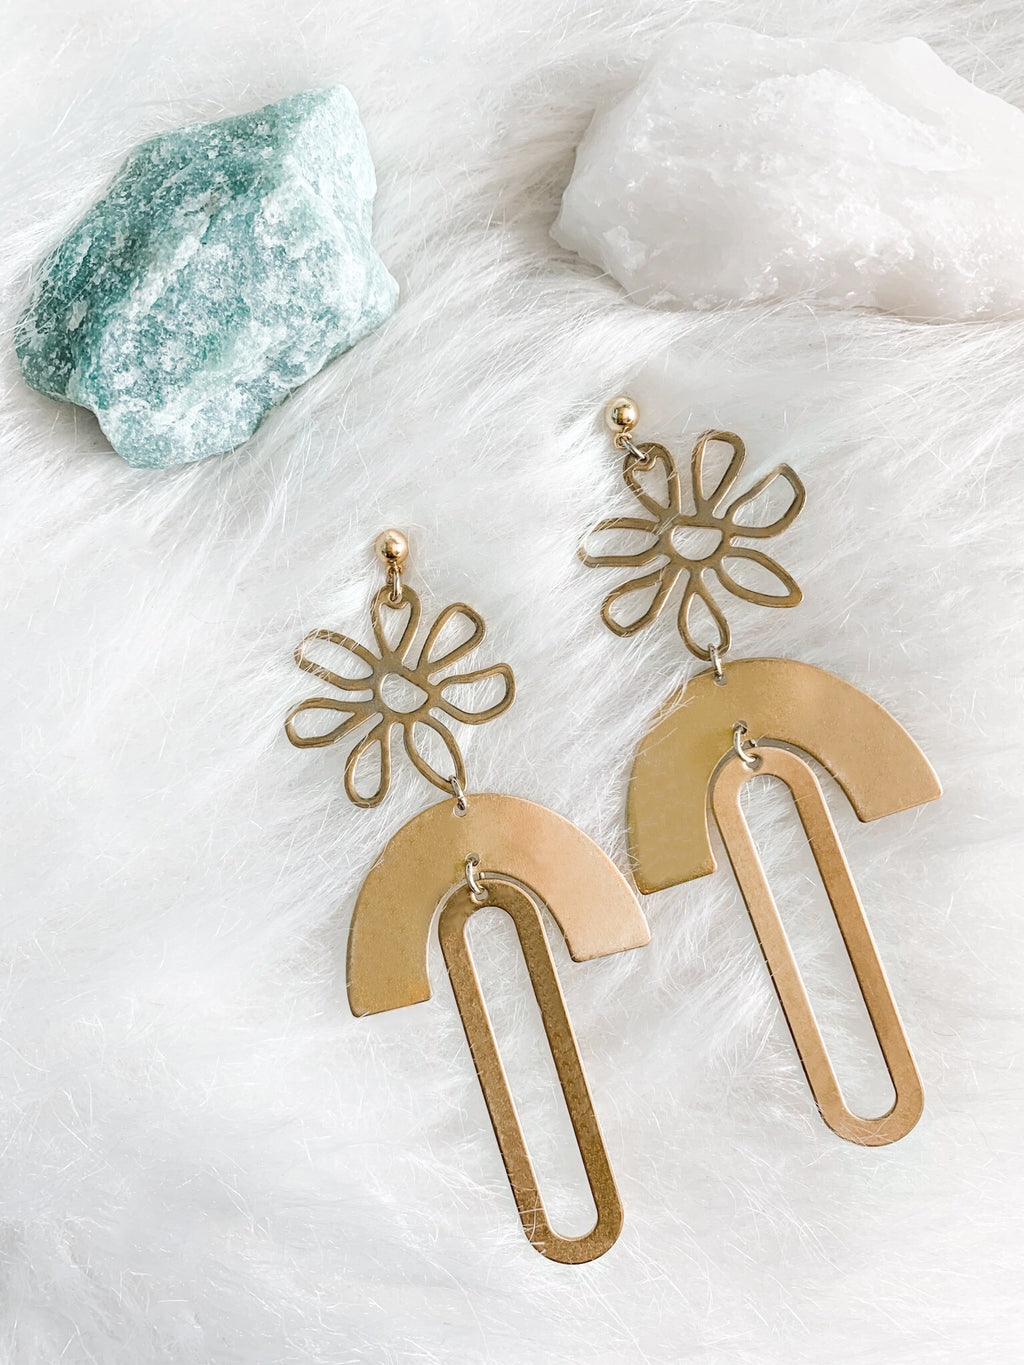 Flower Power Earrings - The Pretty Eclectic